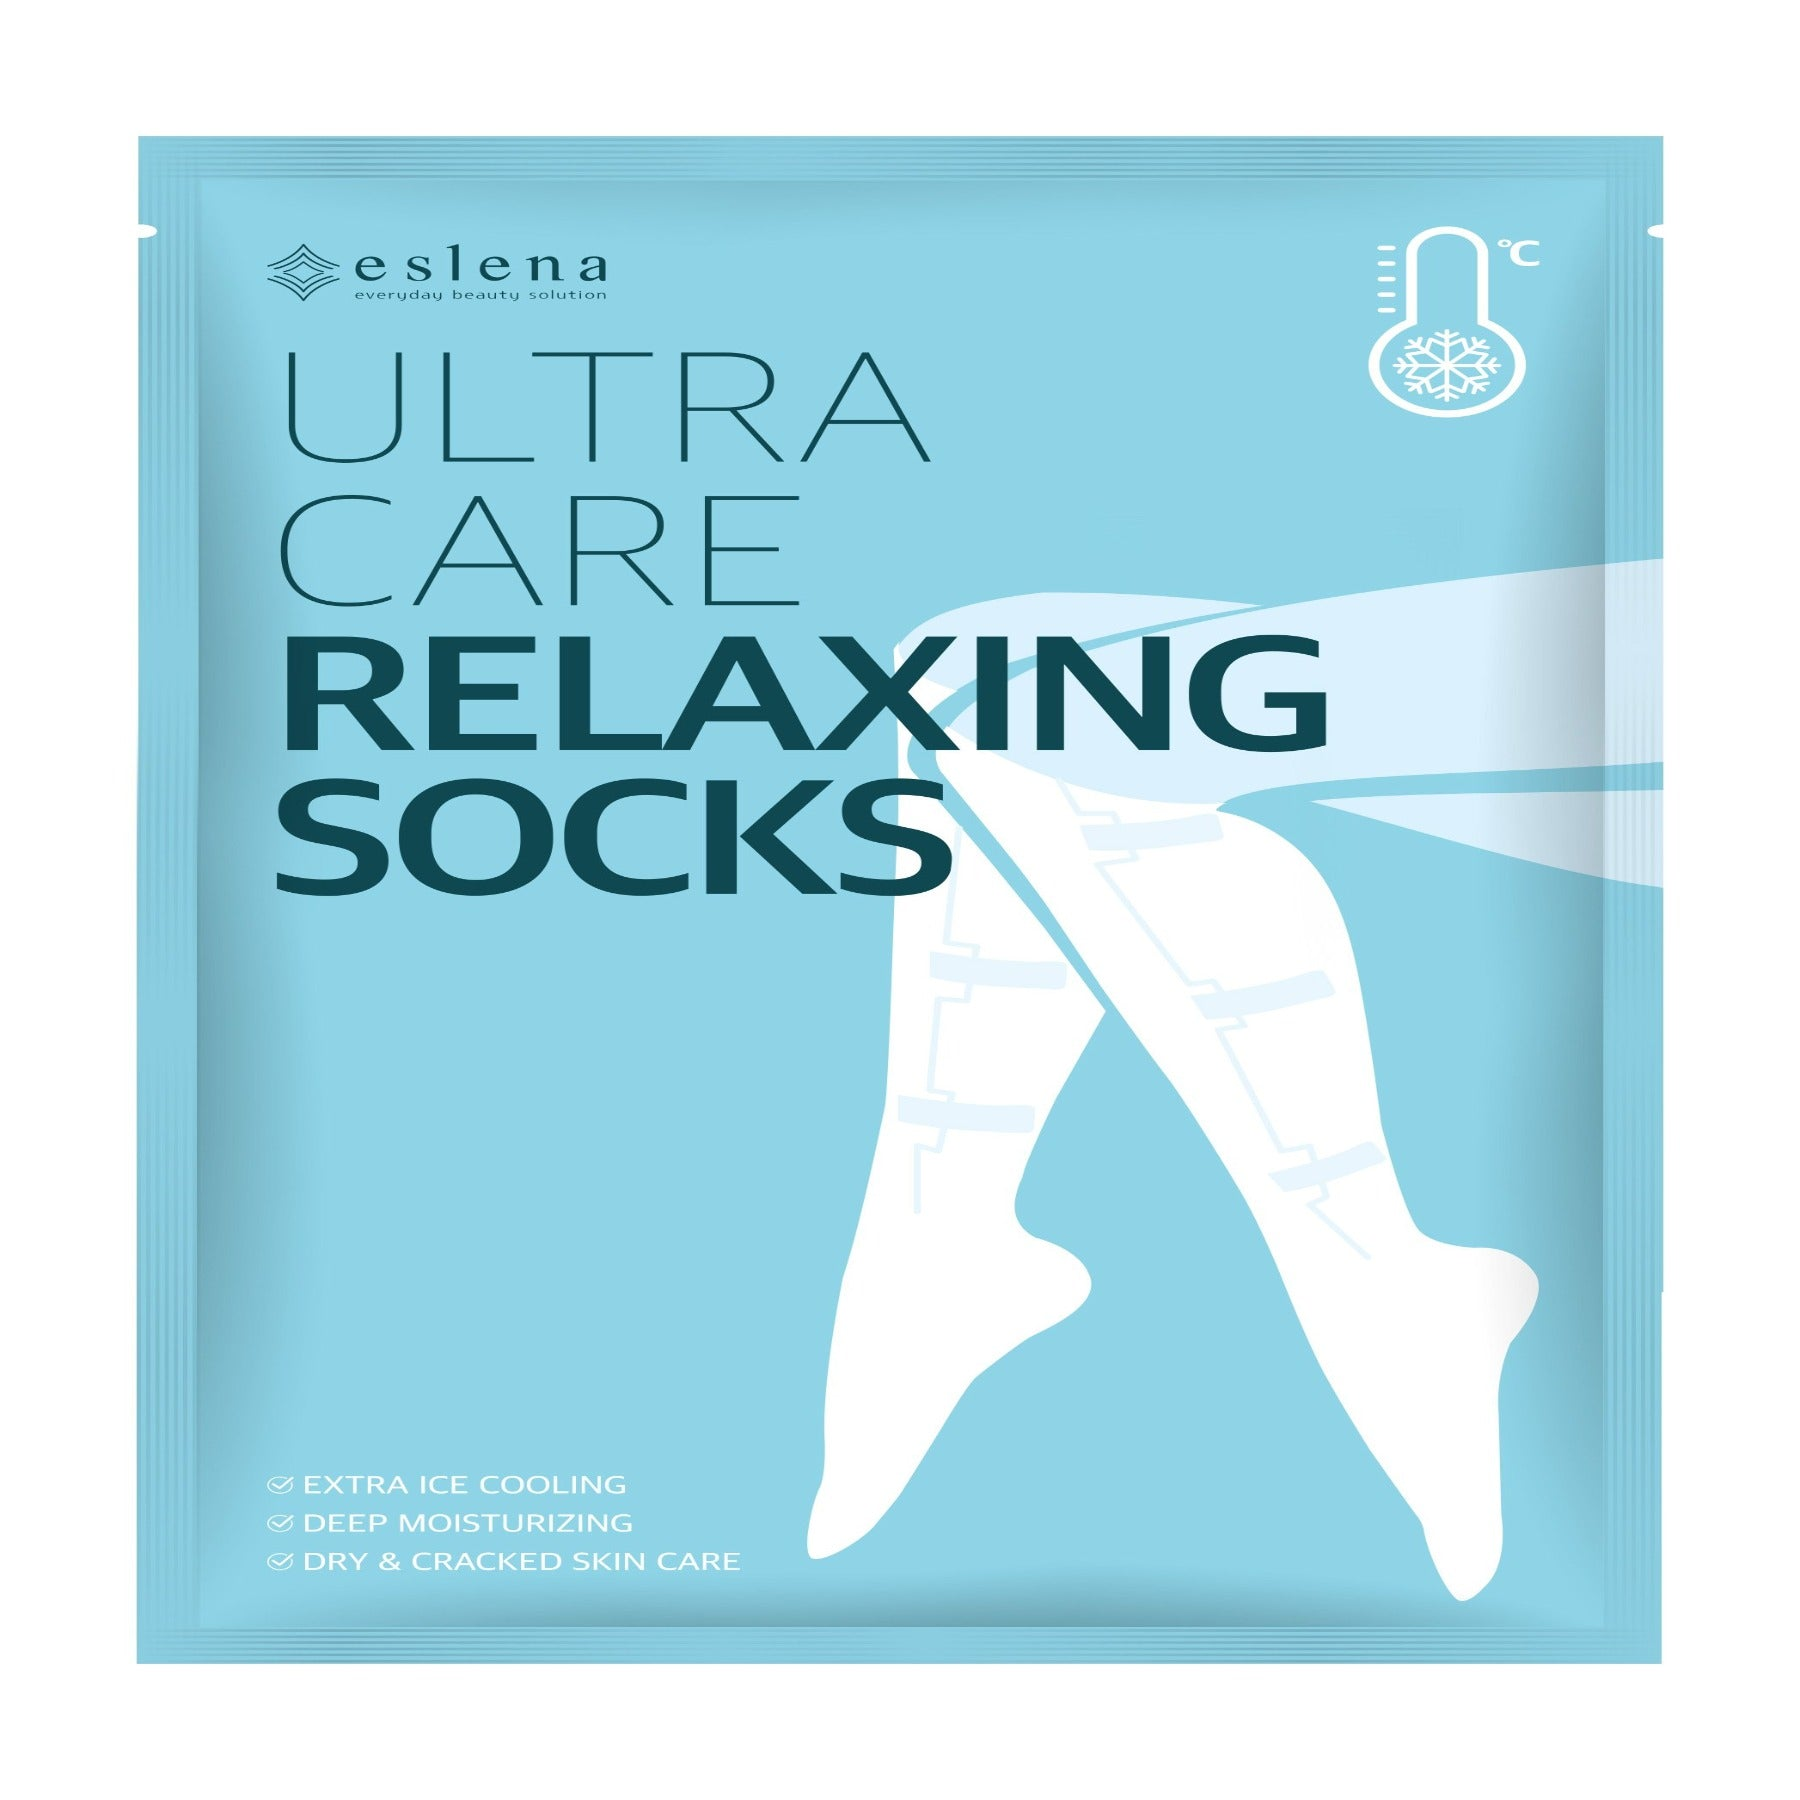 [ESLENA] ULTRA CARE RELAXING SOCKS 1SET (5ea)